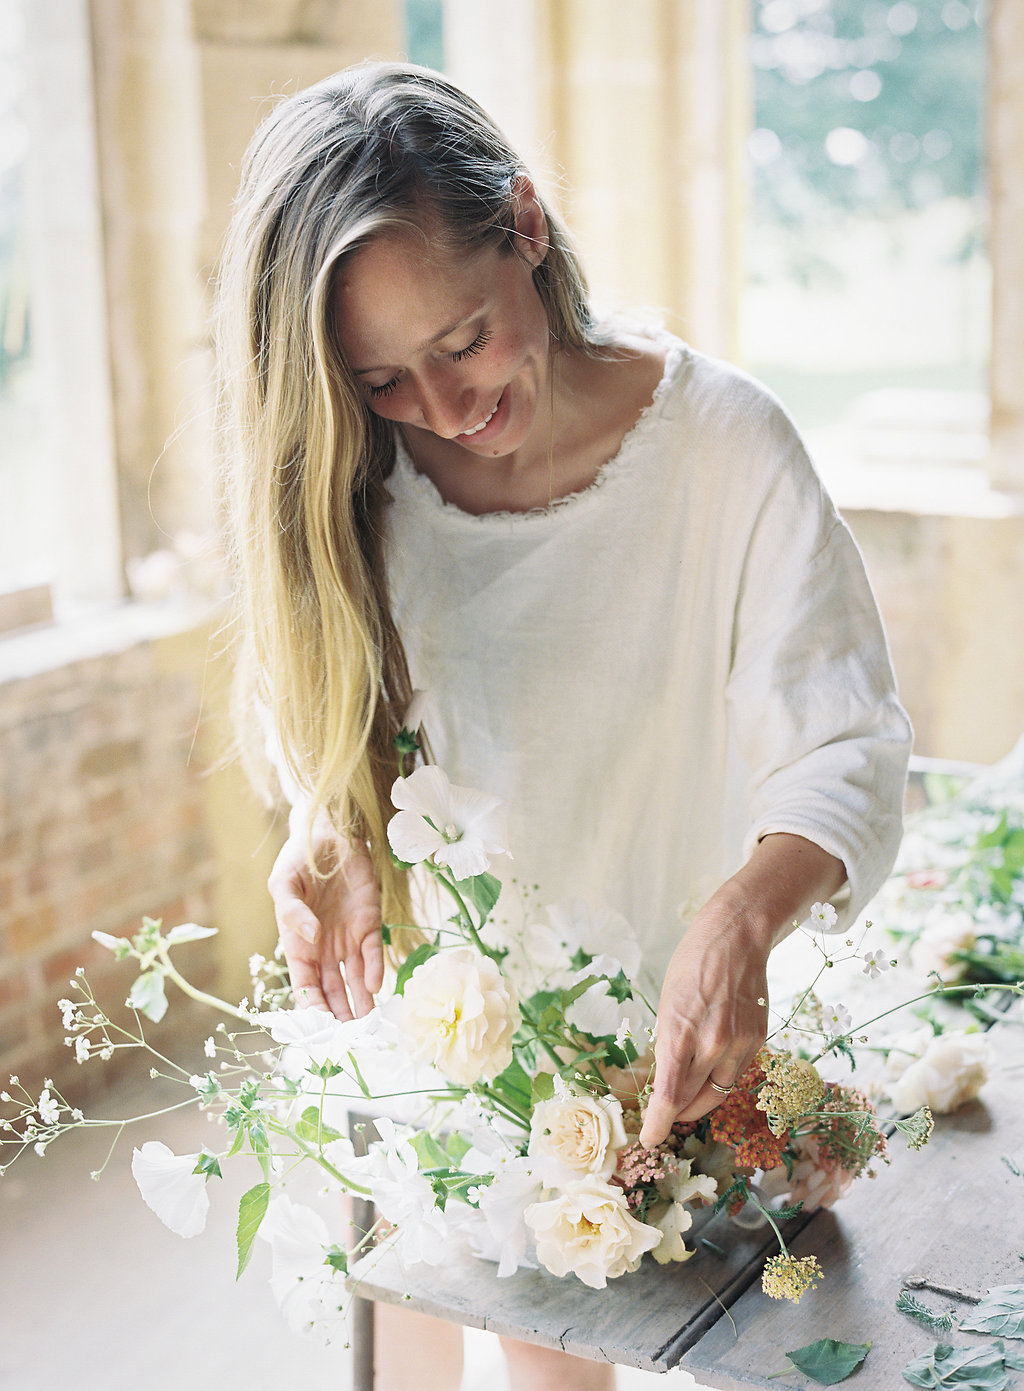 Litha Floral Workshop and Buttonhole Tutorial on cottagehill.co57.jpg